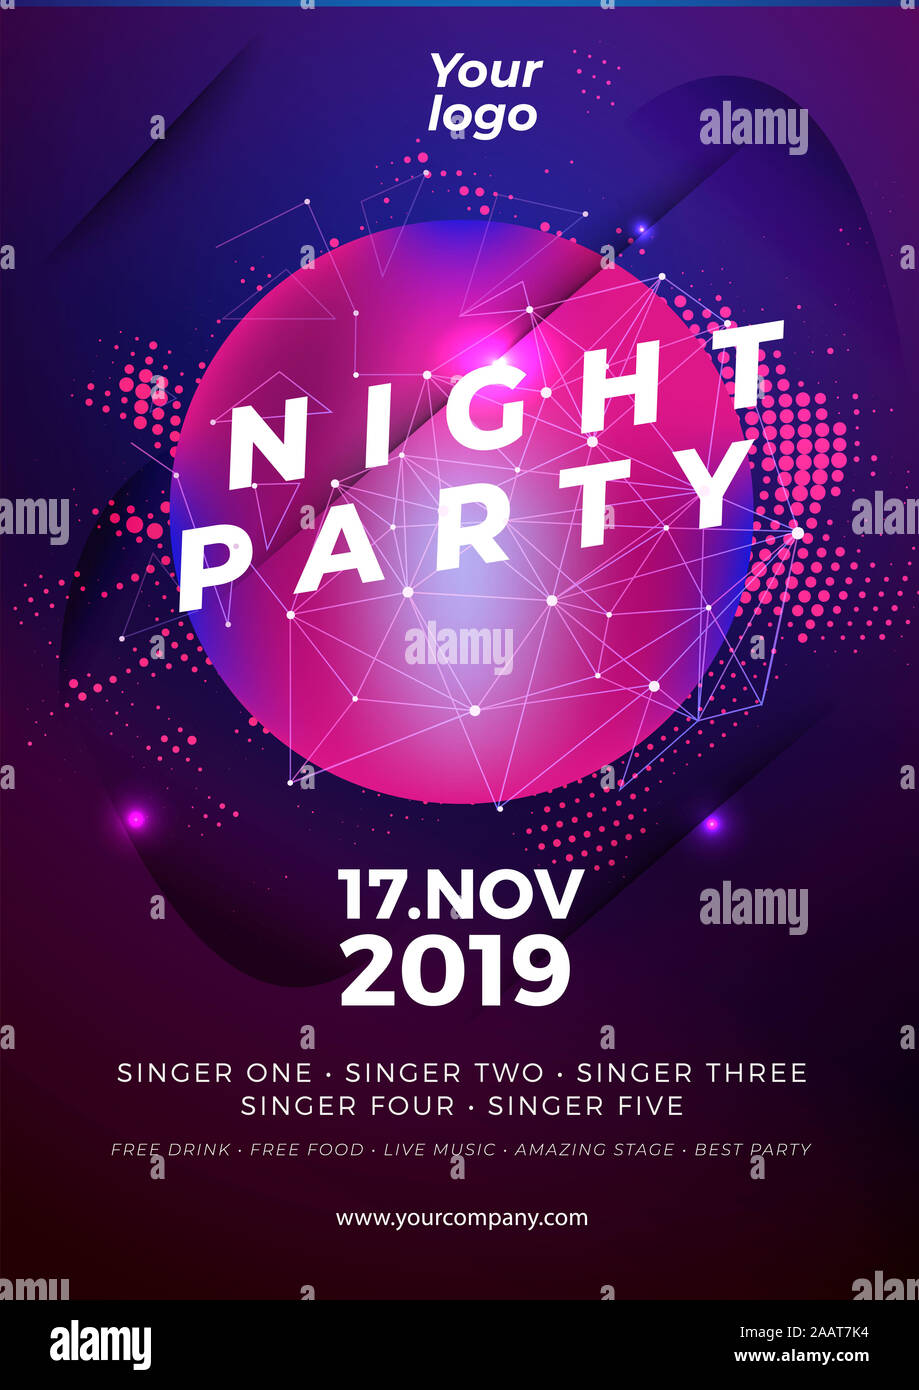 Dance Club Night Party Flyer Brochure Layout Template Club Party Banner Design Vector Illustration Vector Stock Photo Alamy